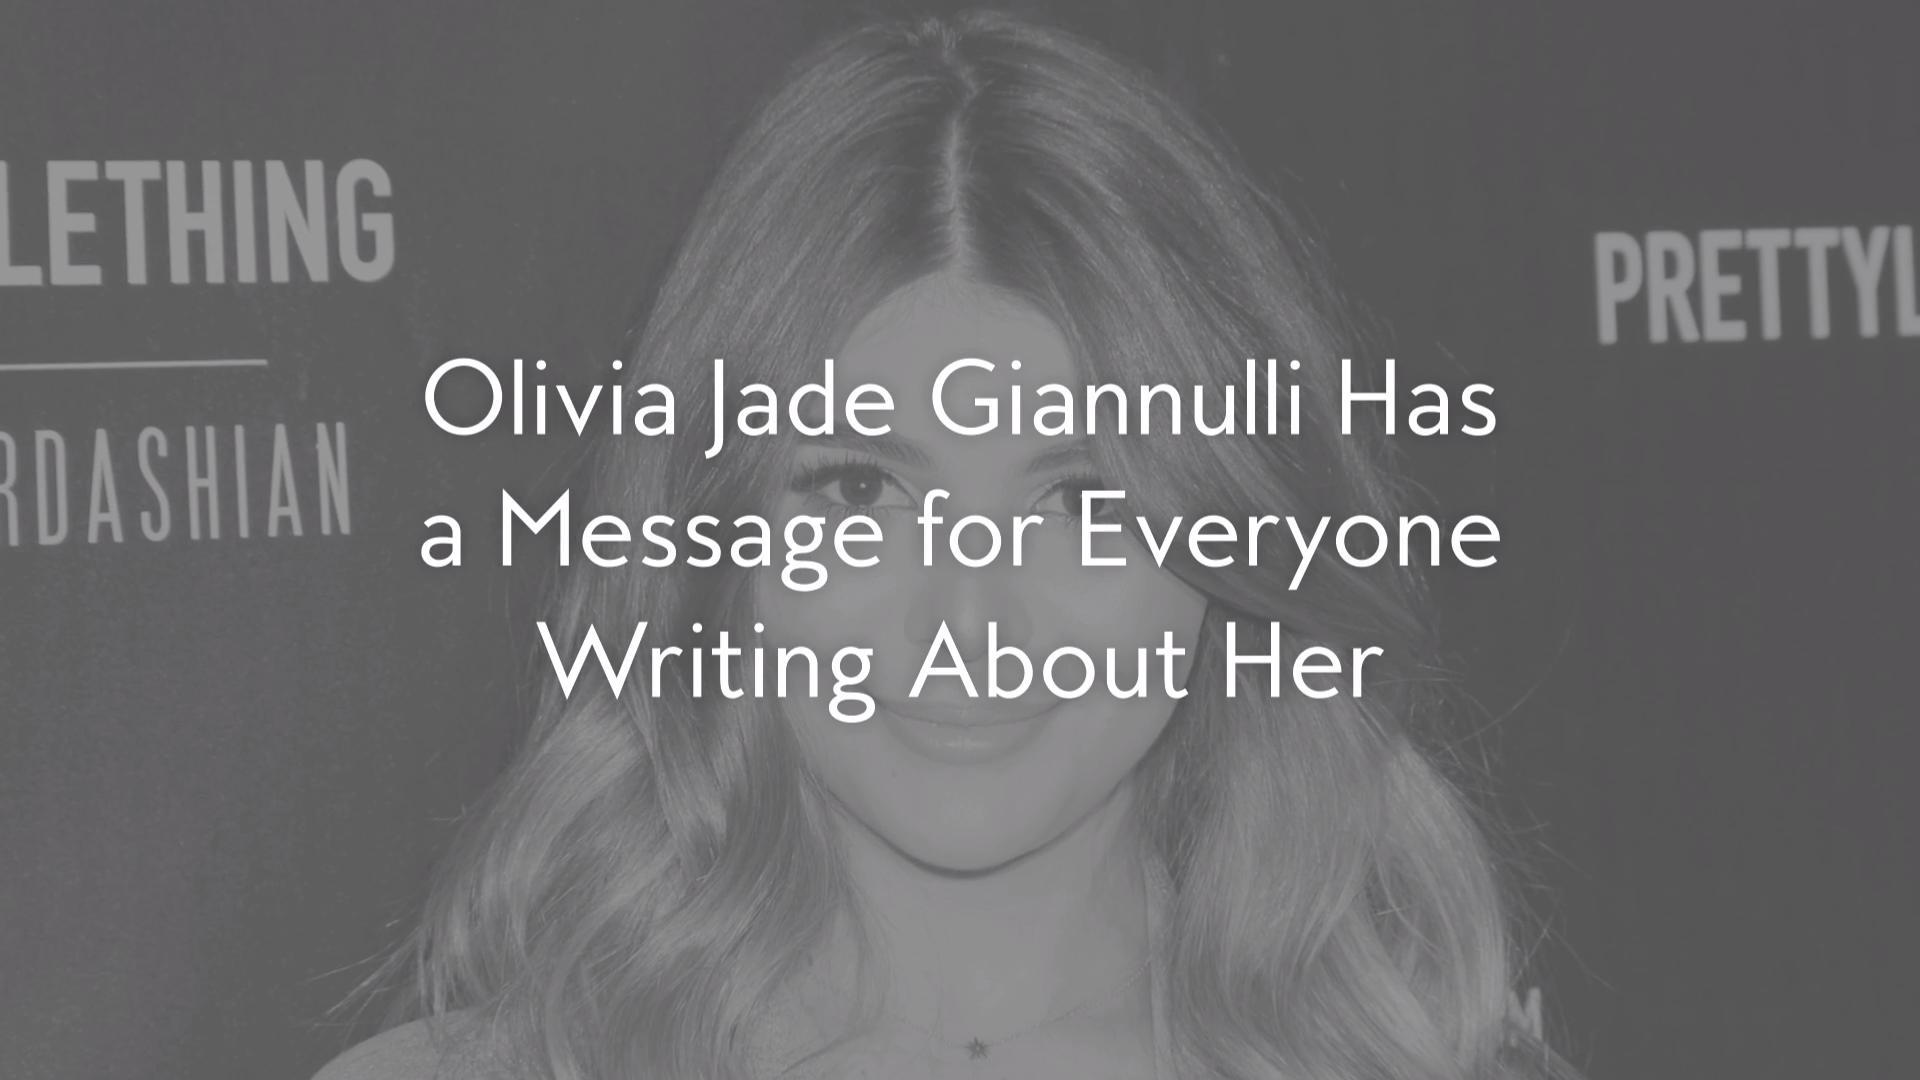 Olivia Jade Giannulli Has a Message for Everyone Writing About Her